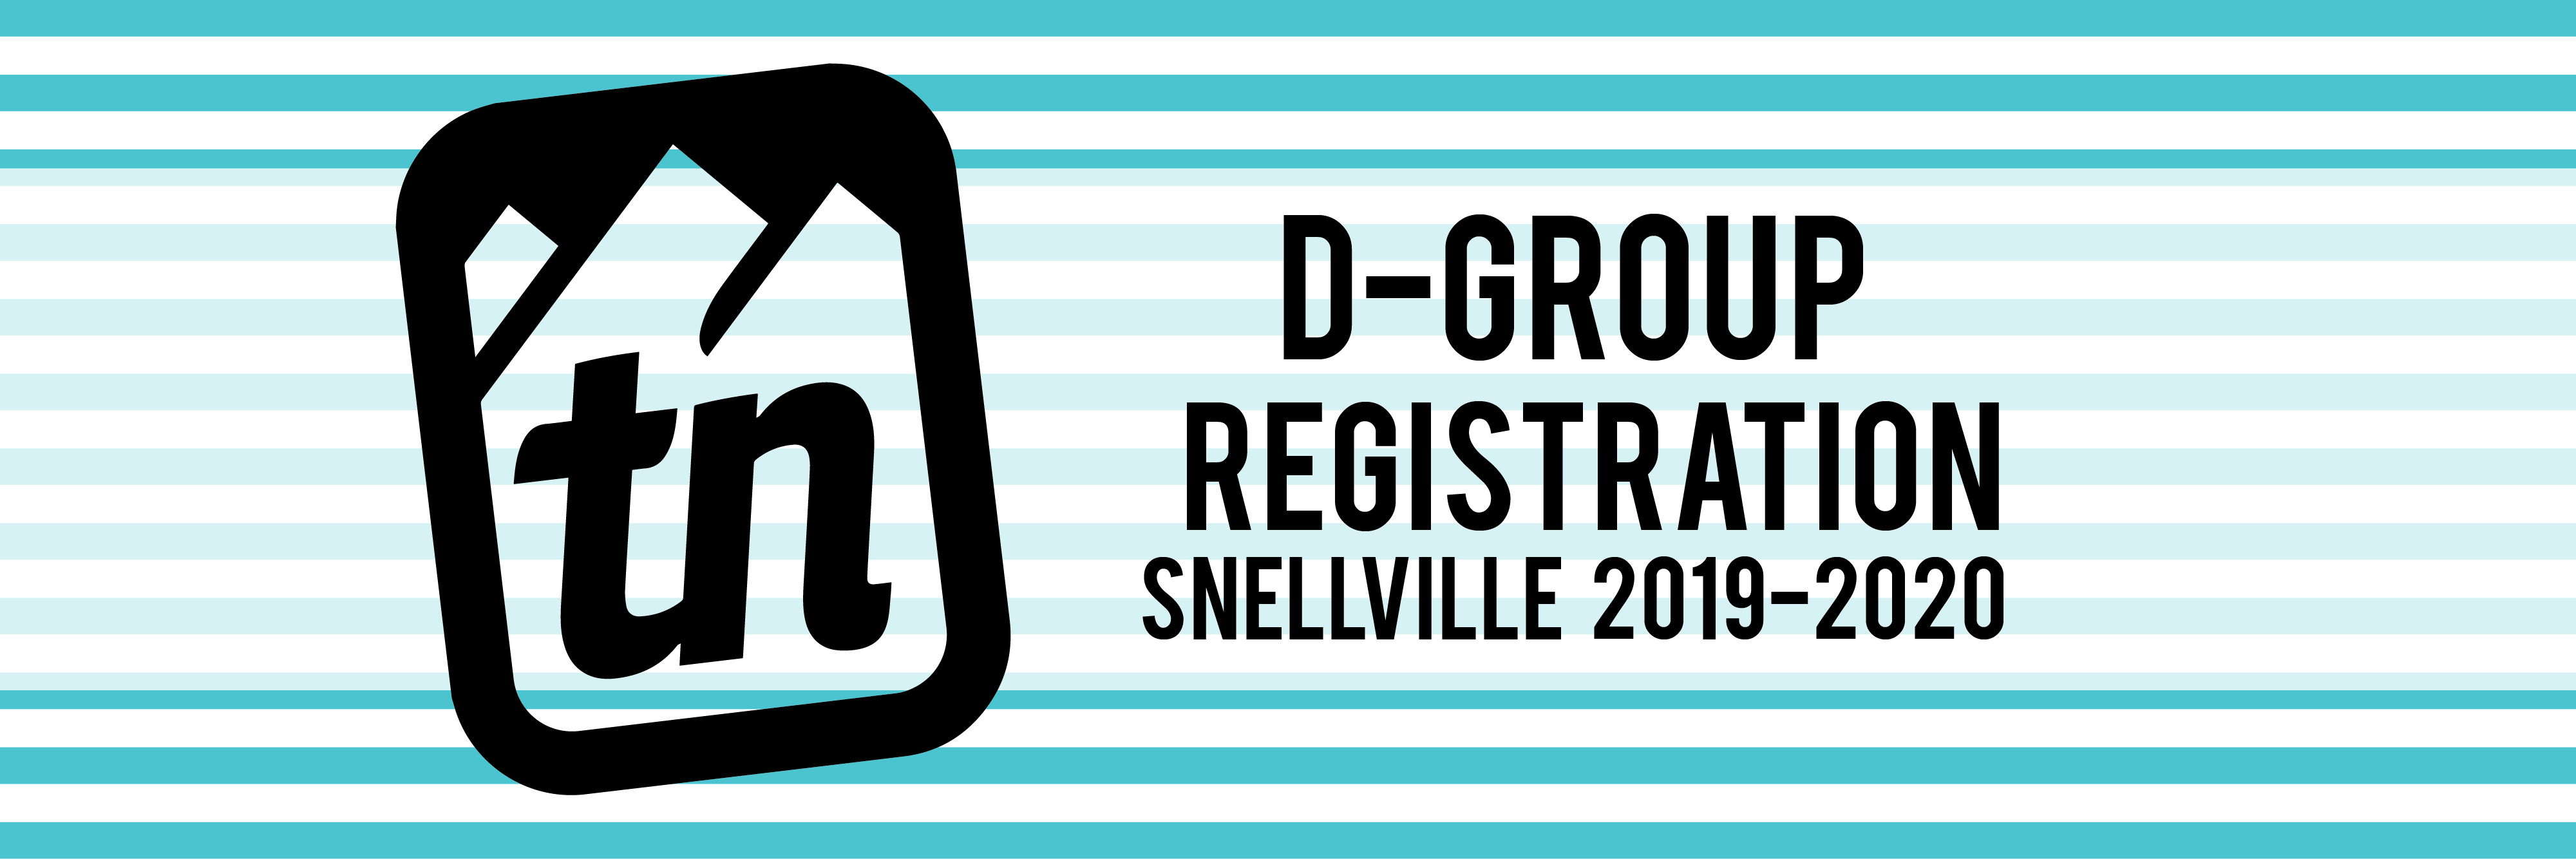 SNELLVILLE: TrueNorth D-Group Registration 2019-20